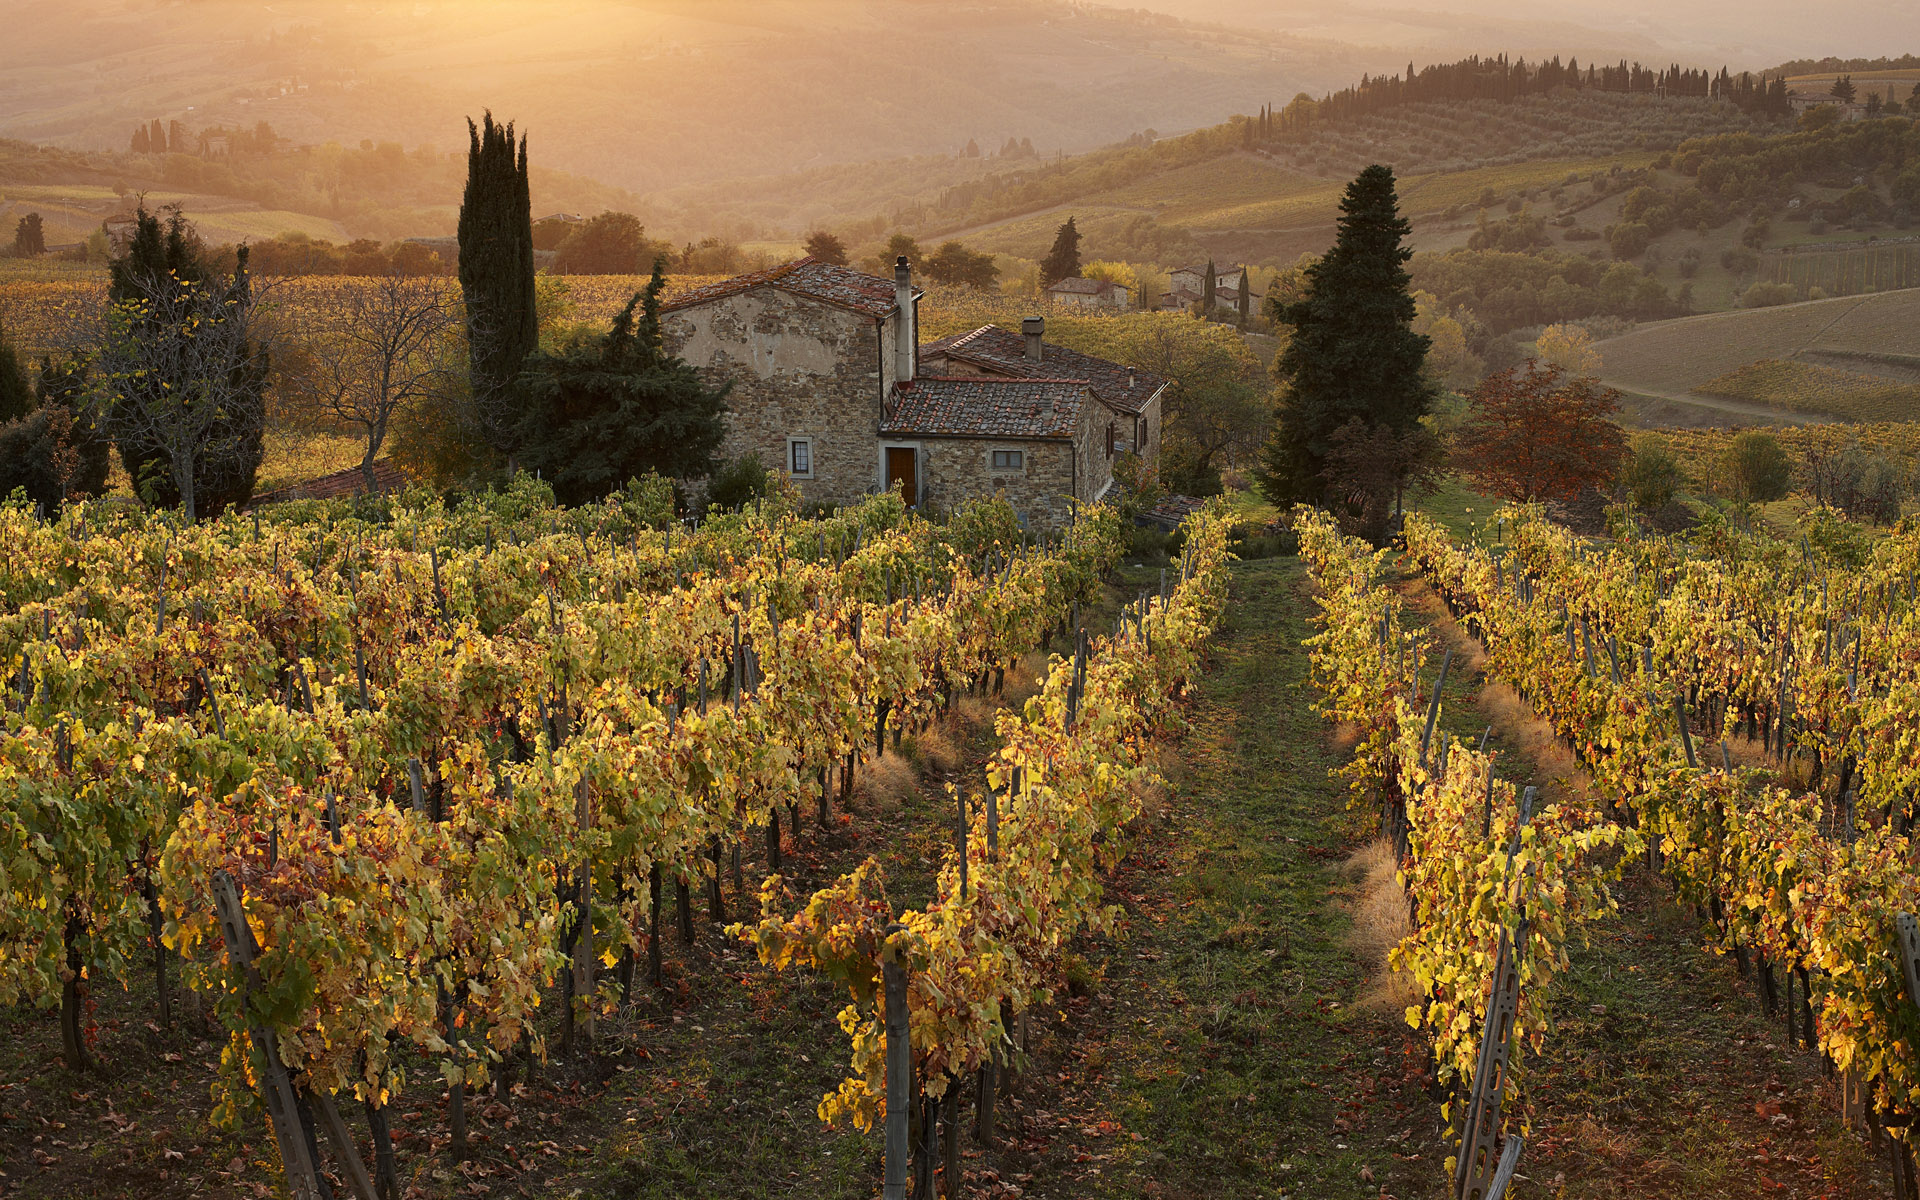 italy-at-sunset-panzano-chianti-tuscany-hi-res